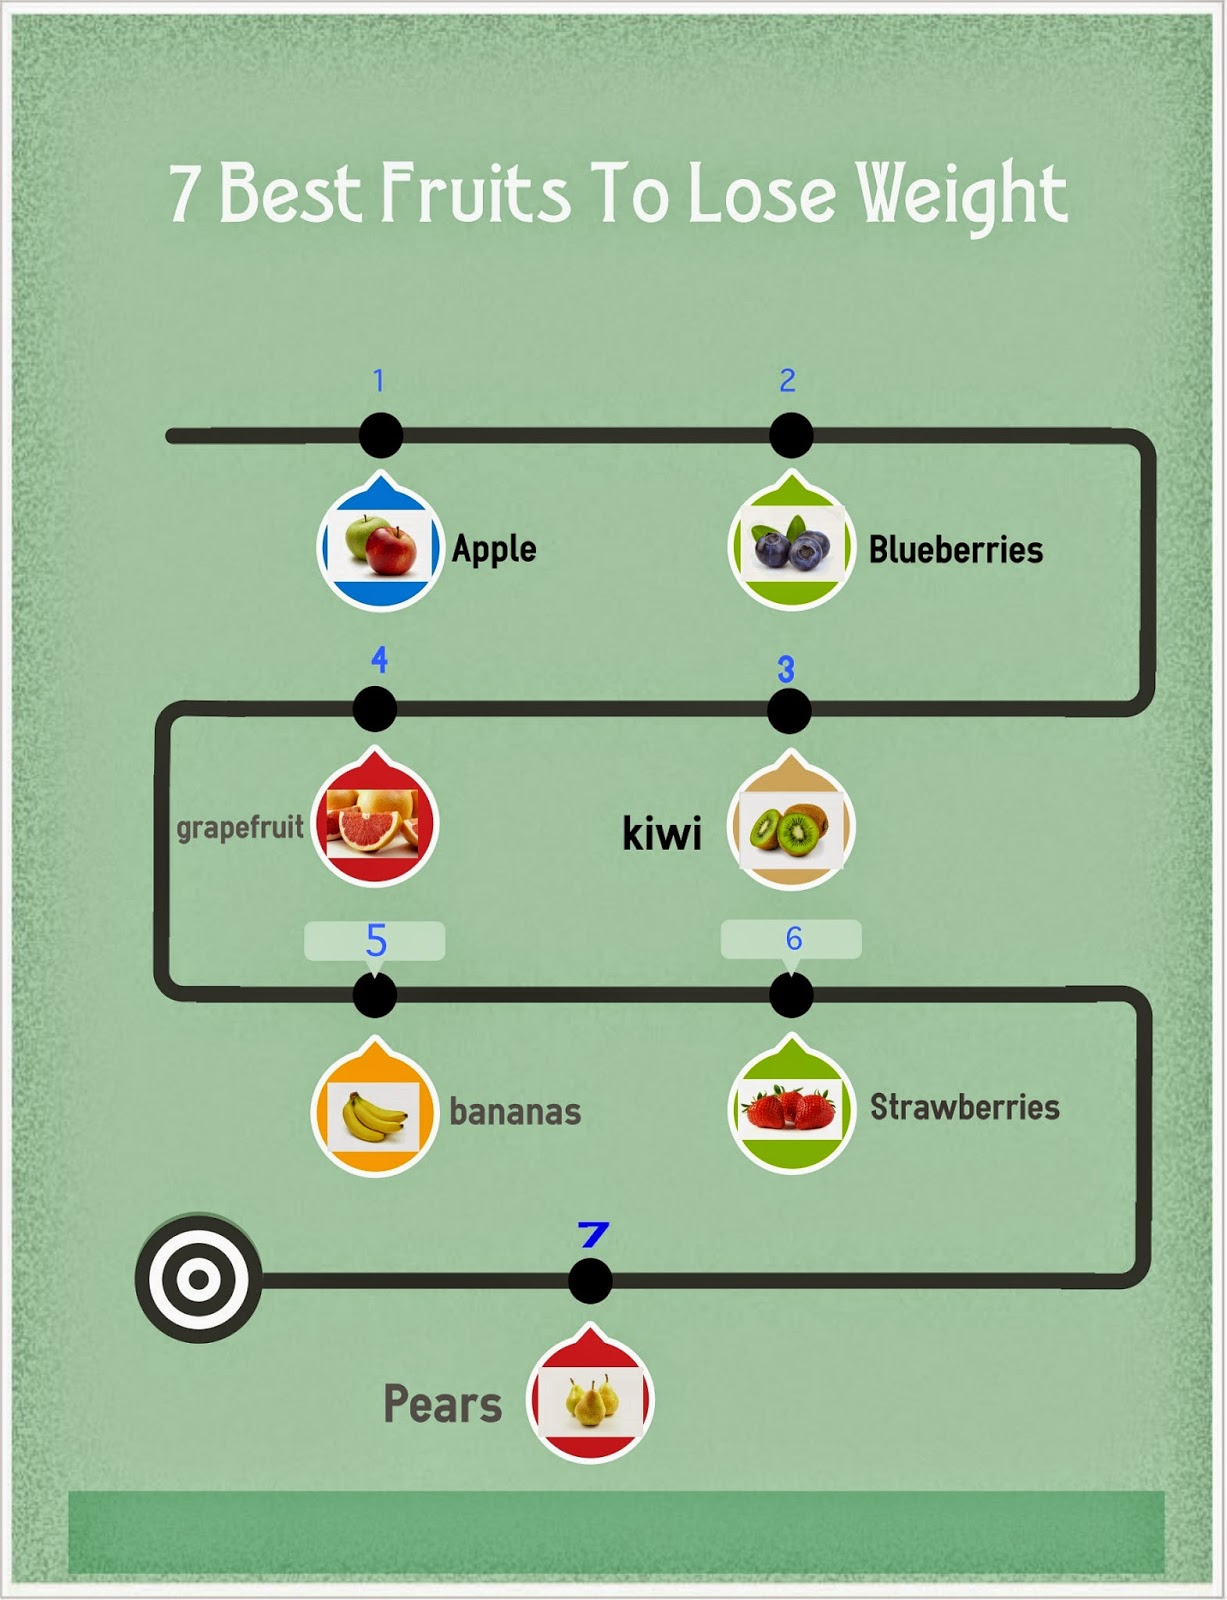 7 Best Fruits To Lose Weight (Infographic)